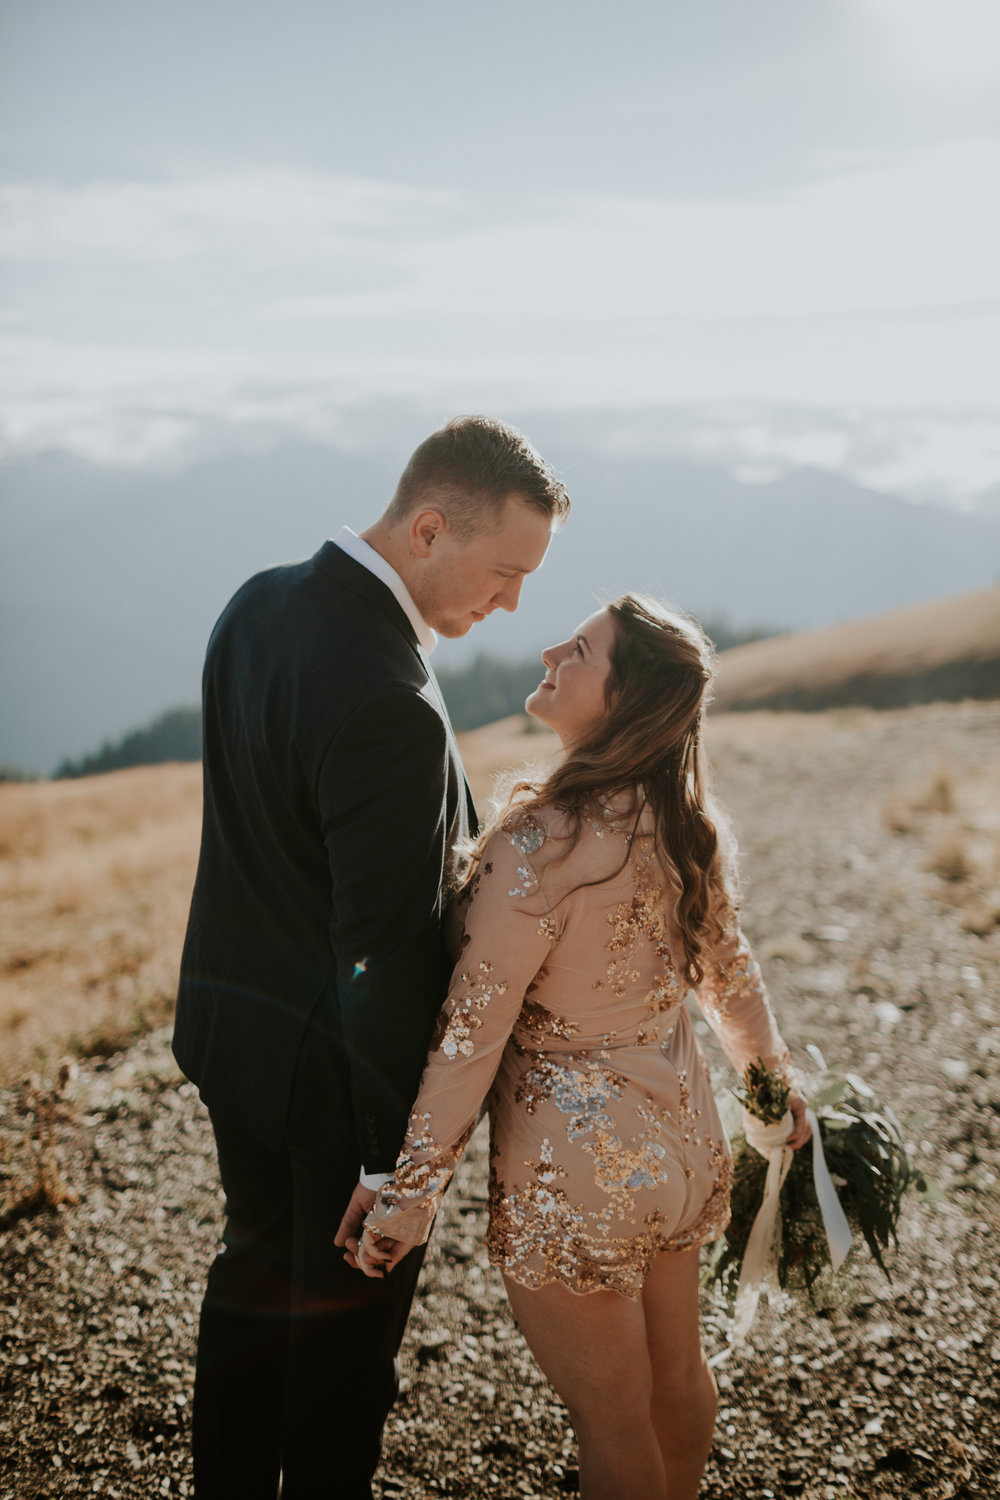 PNW-Hurricane-Ridge-Port-Angeles-Washington-elopement-photographer-kayla-dawn-photography-kayladawnphoto-wedding-anniversary-photoshoot-olympic-peninsula-100.jpg